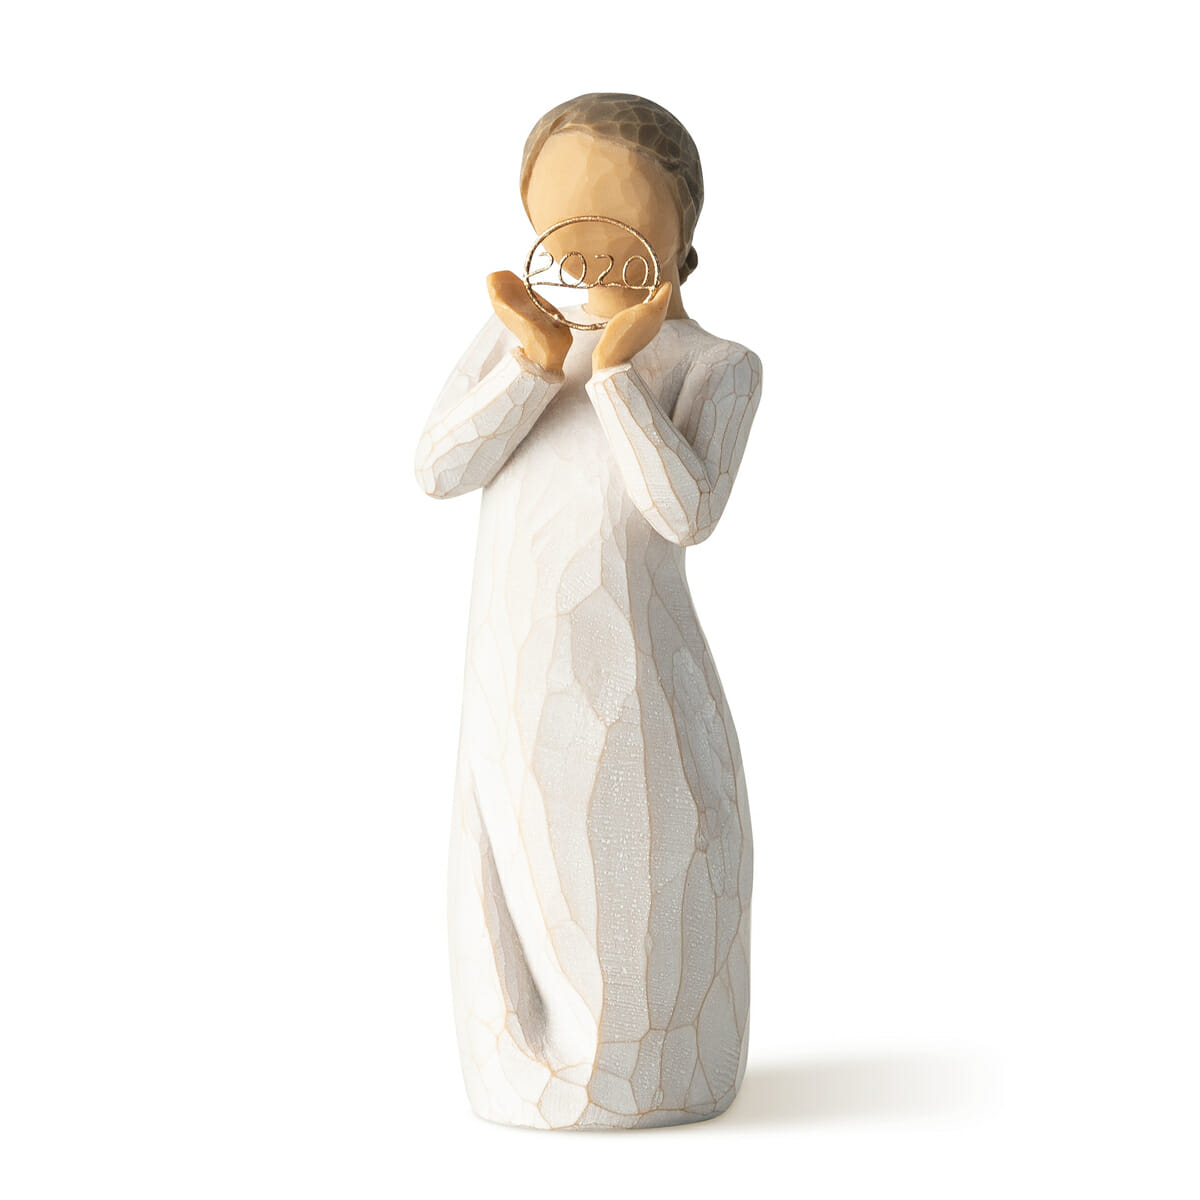 WILLOW TREE FIGURINE - REFLECTIONS 2020 14CMH 27926